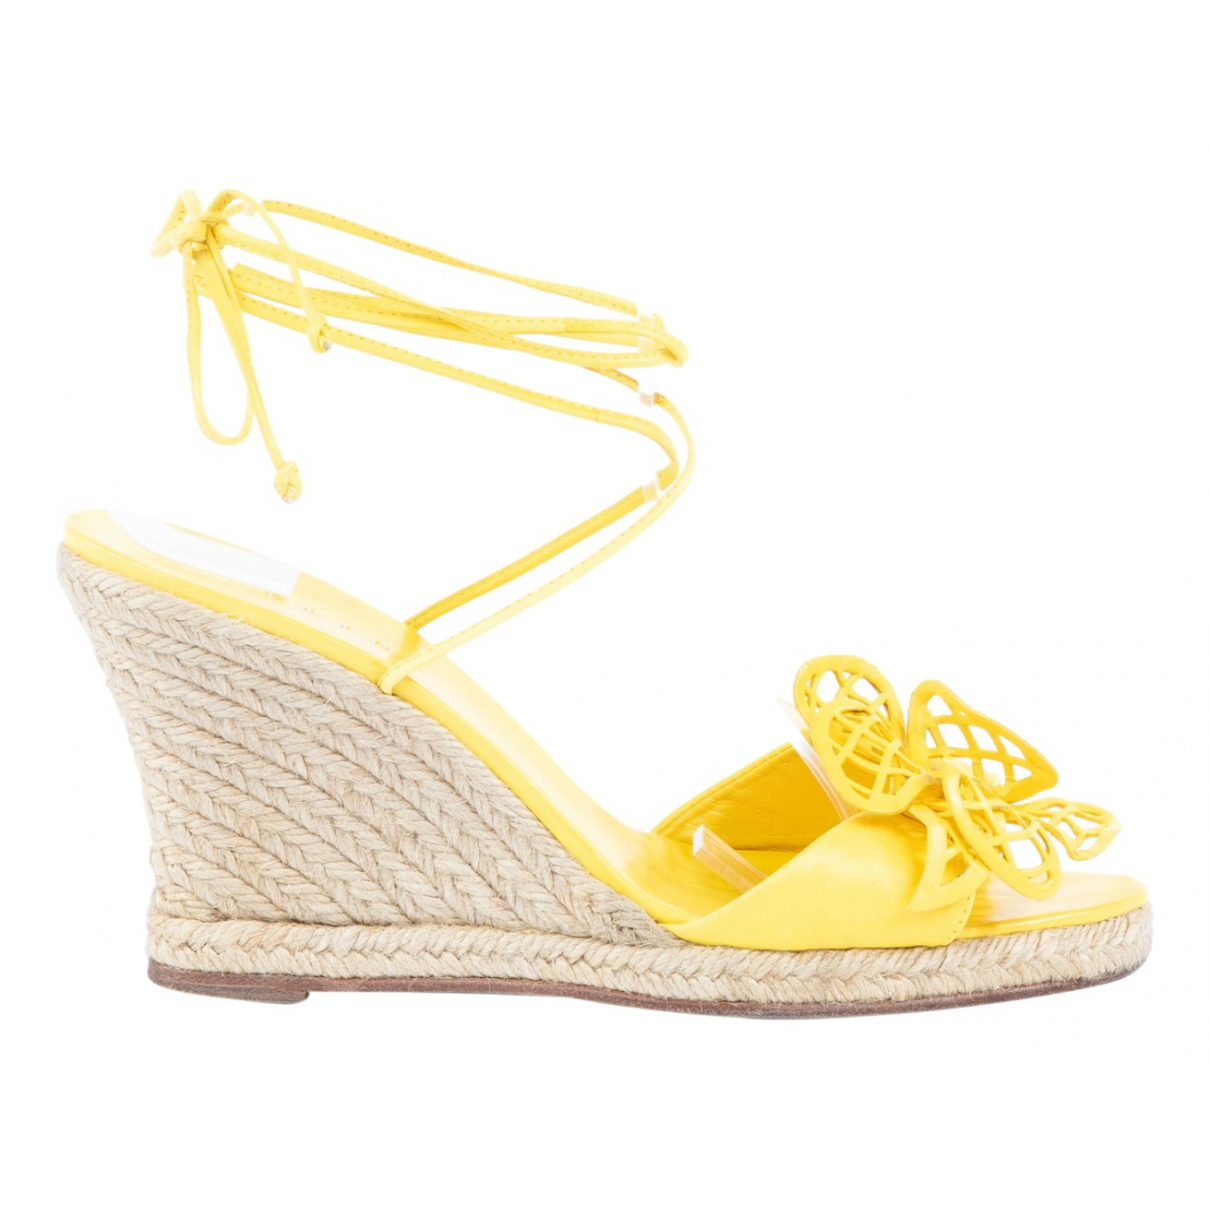 Celine \N Yellow Leather Sandals for Women 38 EU